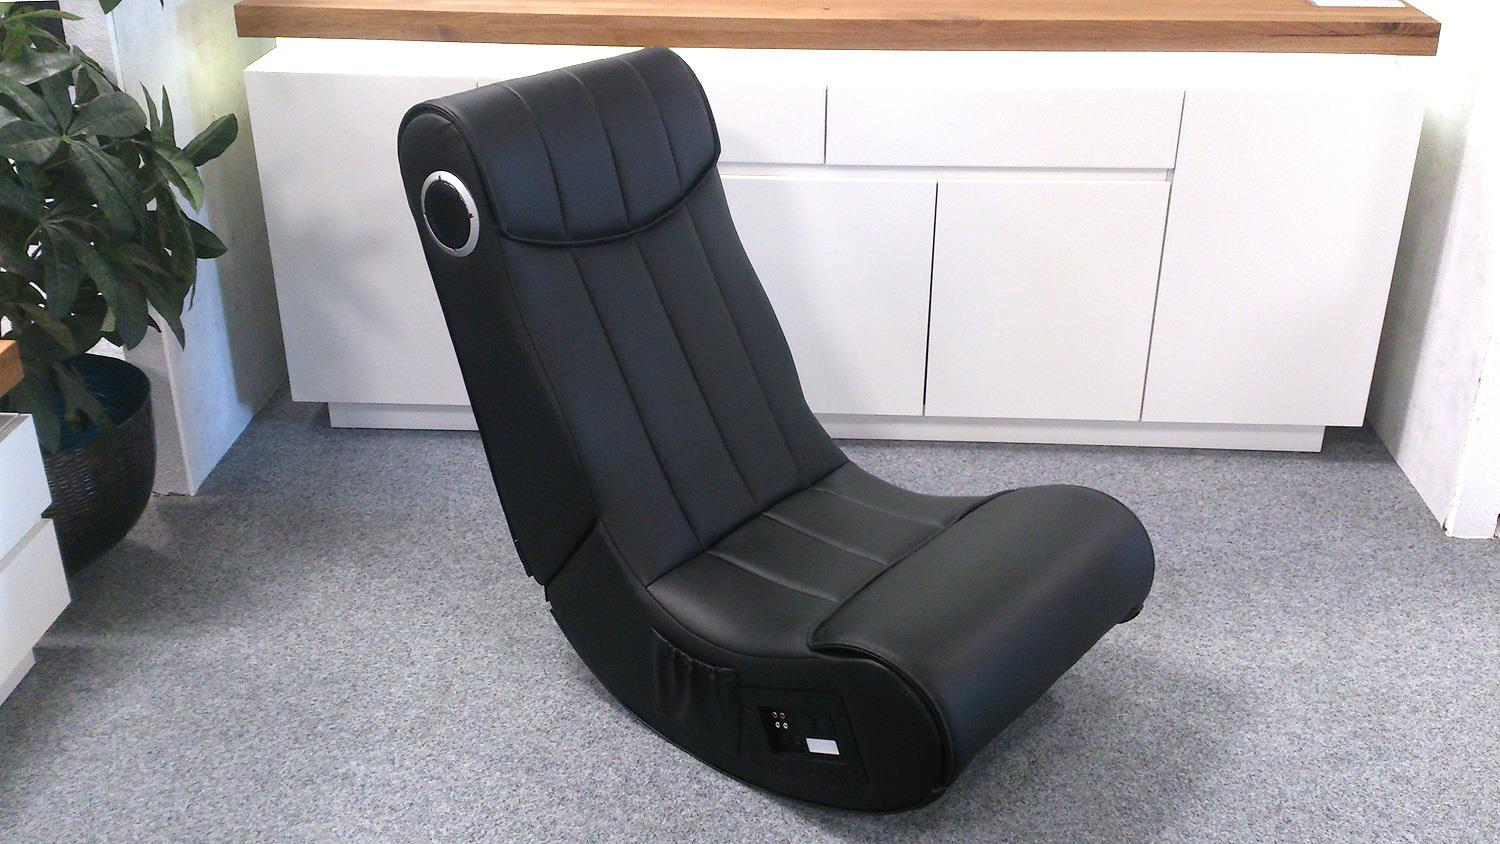 Ps3 Sessel Gaming Chair Soundz Für Playstation Xbox Wii In Schwarz